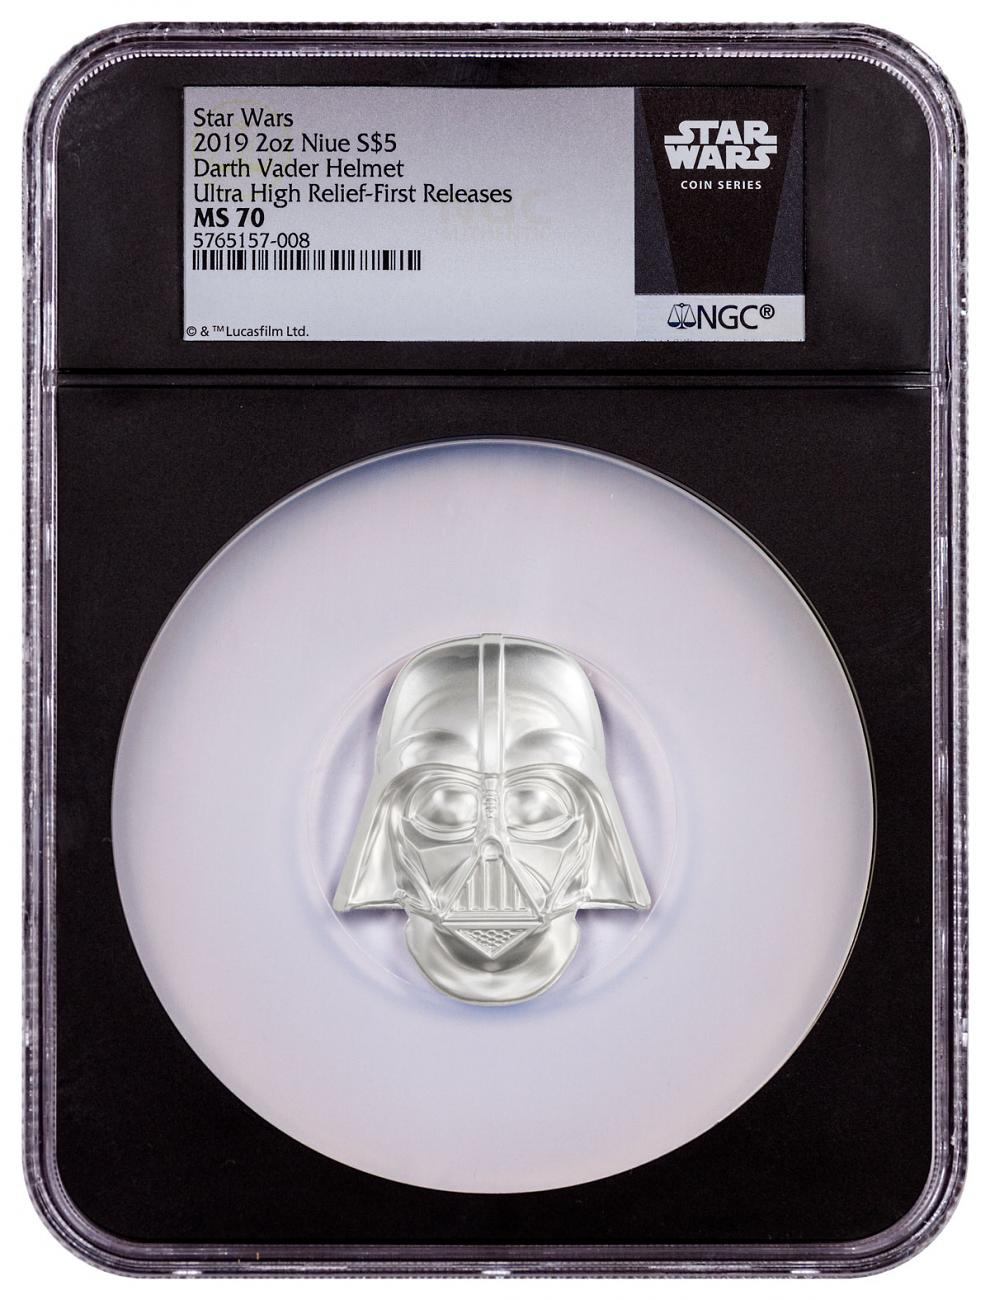 2019 Niue Star Wars - Darth Vader Ultra High Relief Helmet Shaped 2 oz Silver $5 Coin NGC MS70 FR Black Core Holder Exclusive Star Wars Label